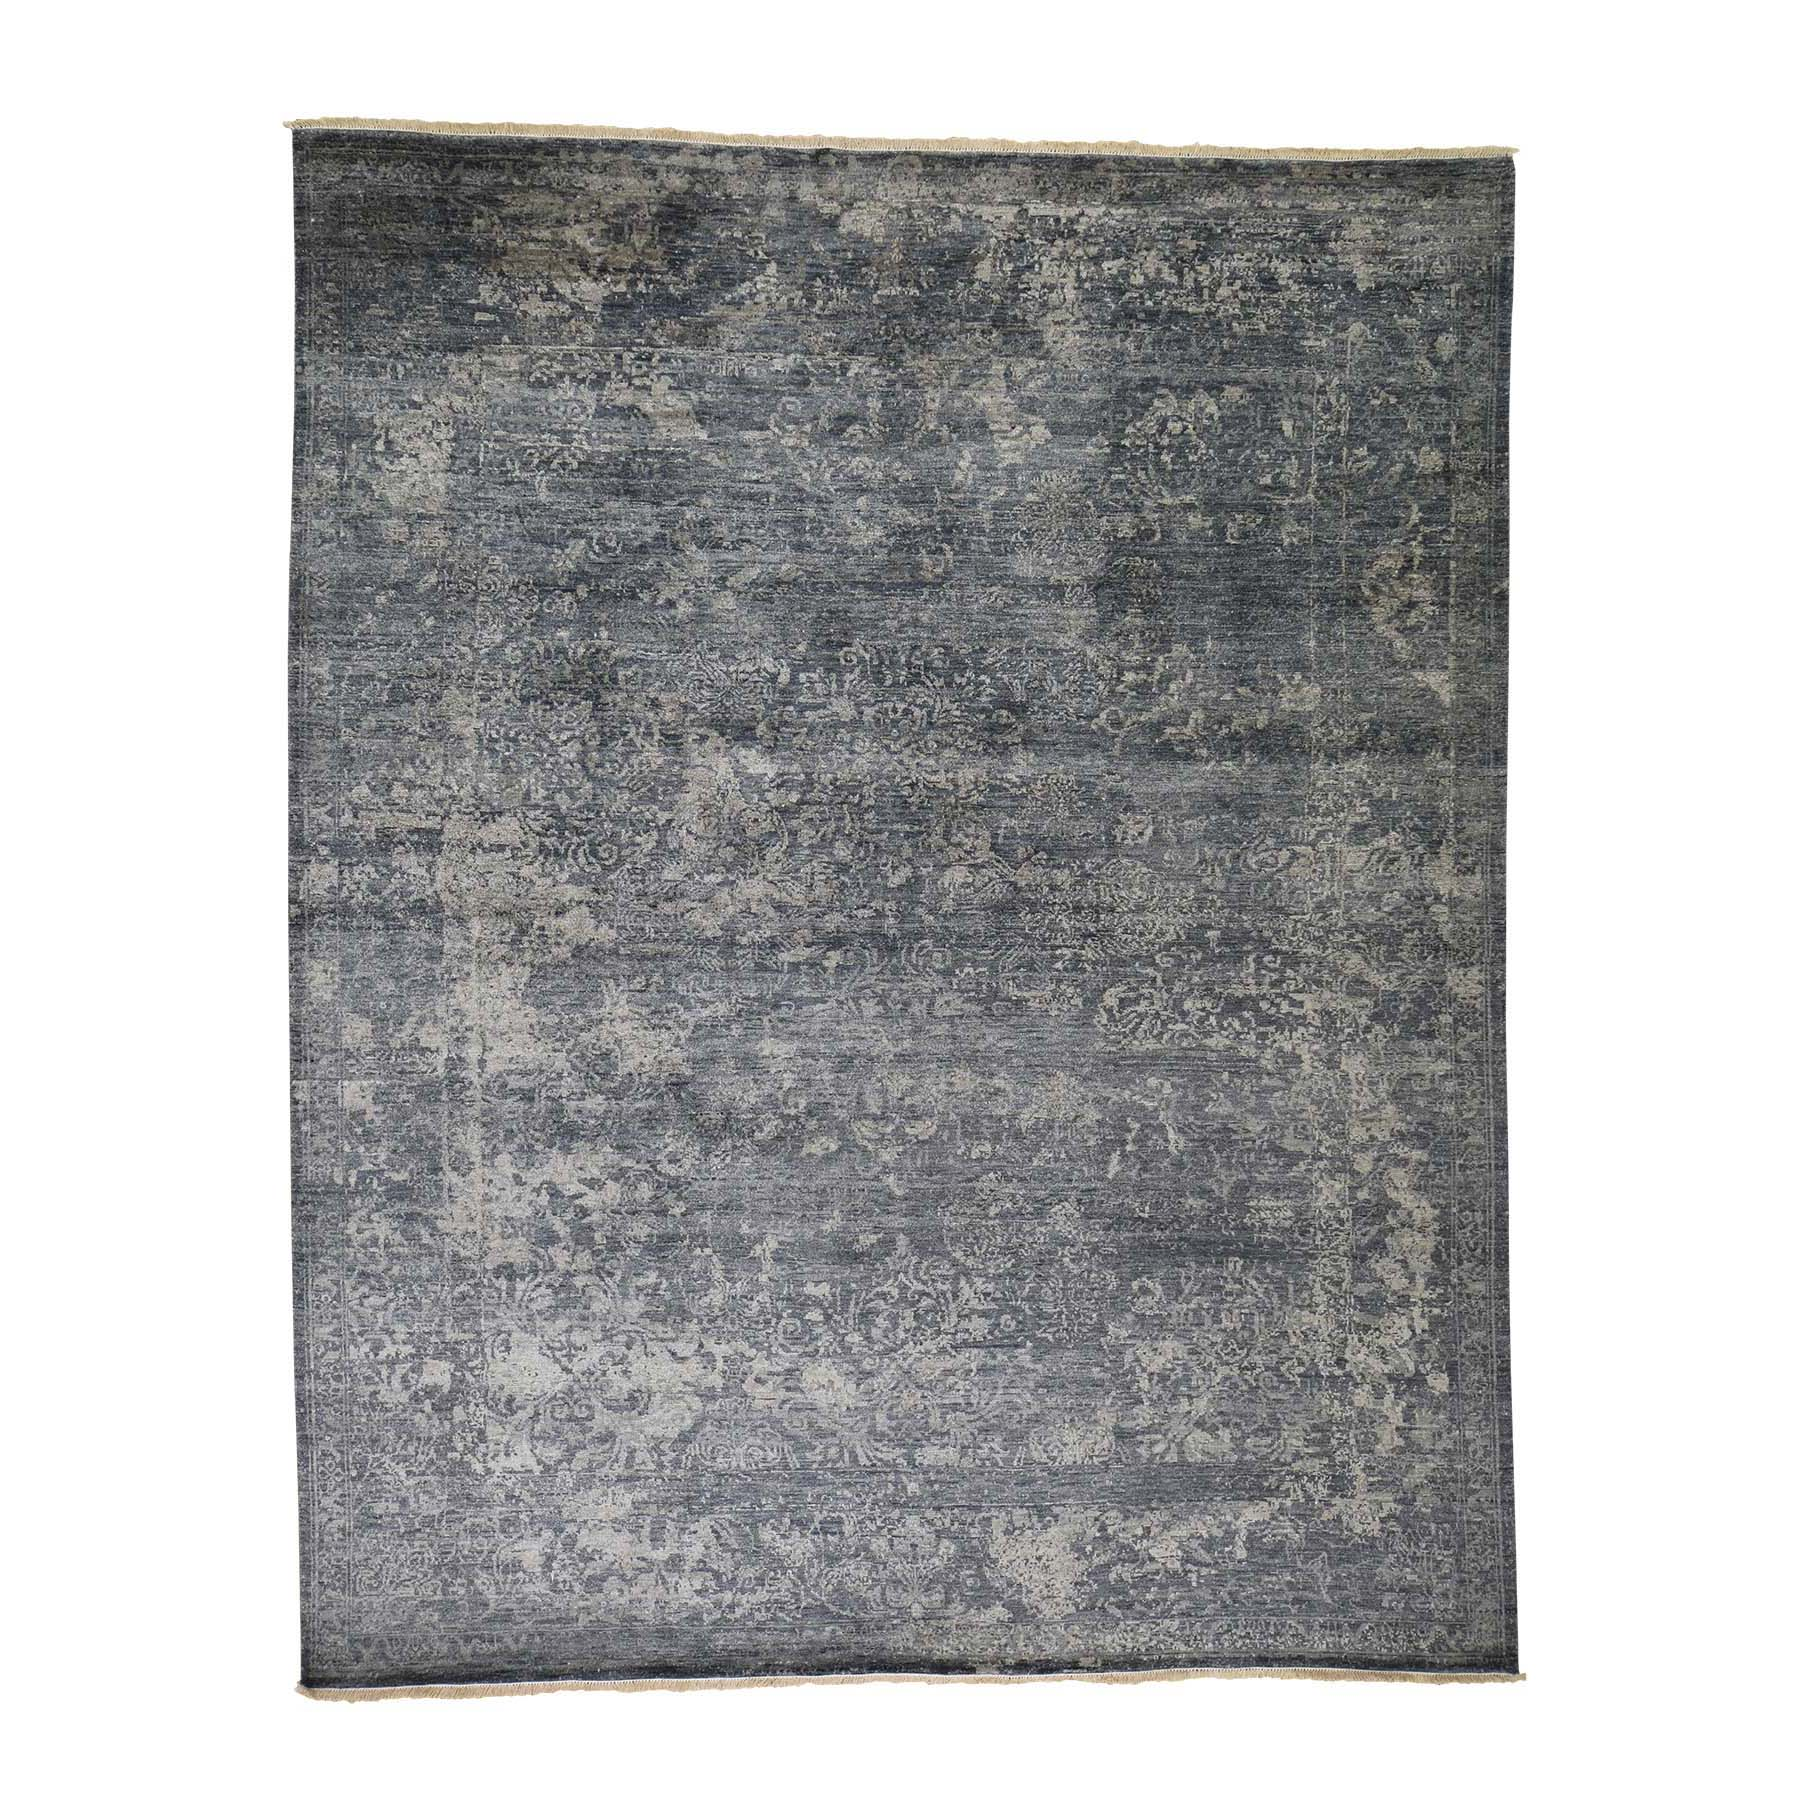 Modern & Contemporary Rugs LUV402849